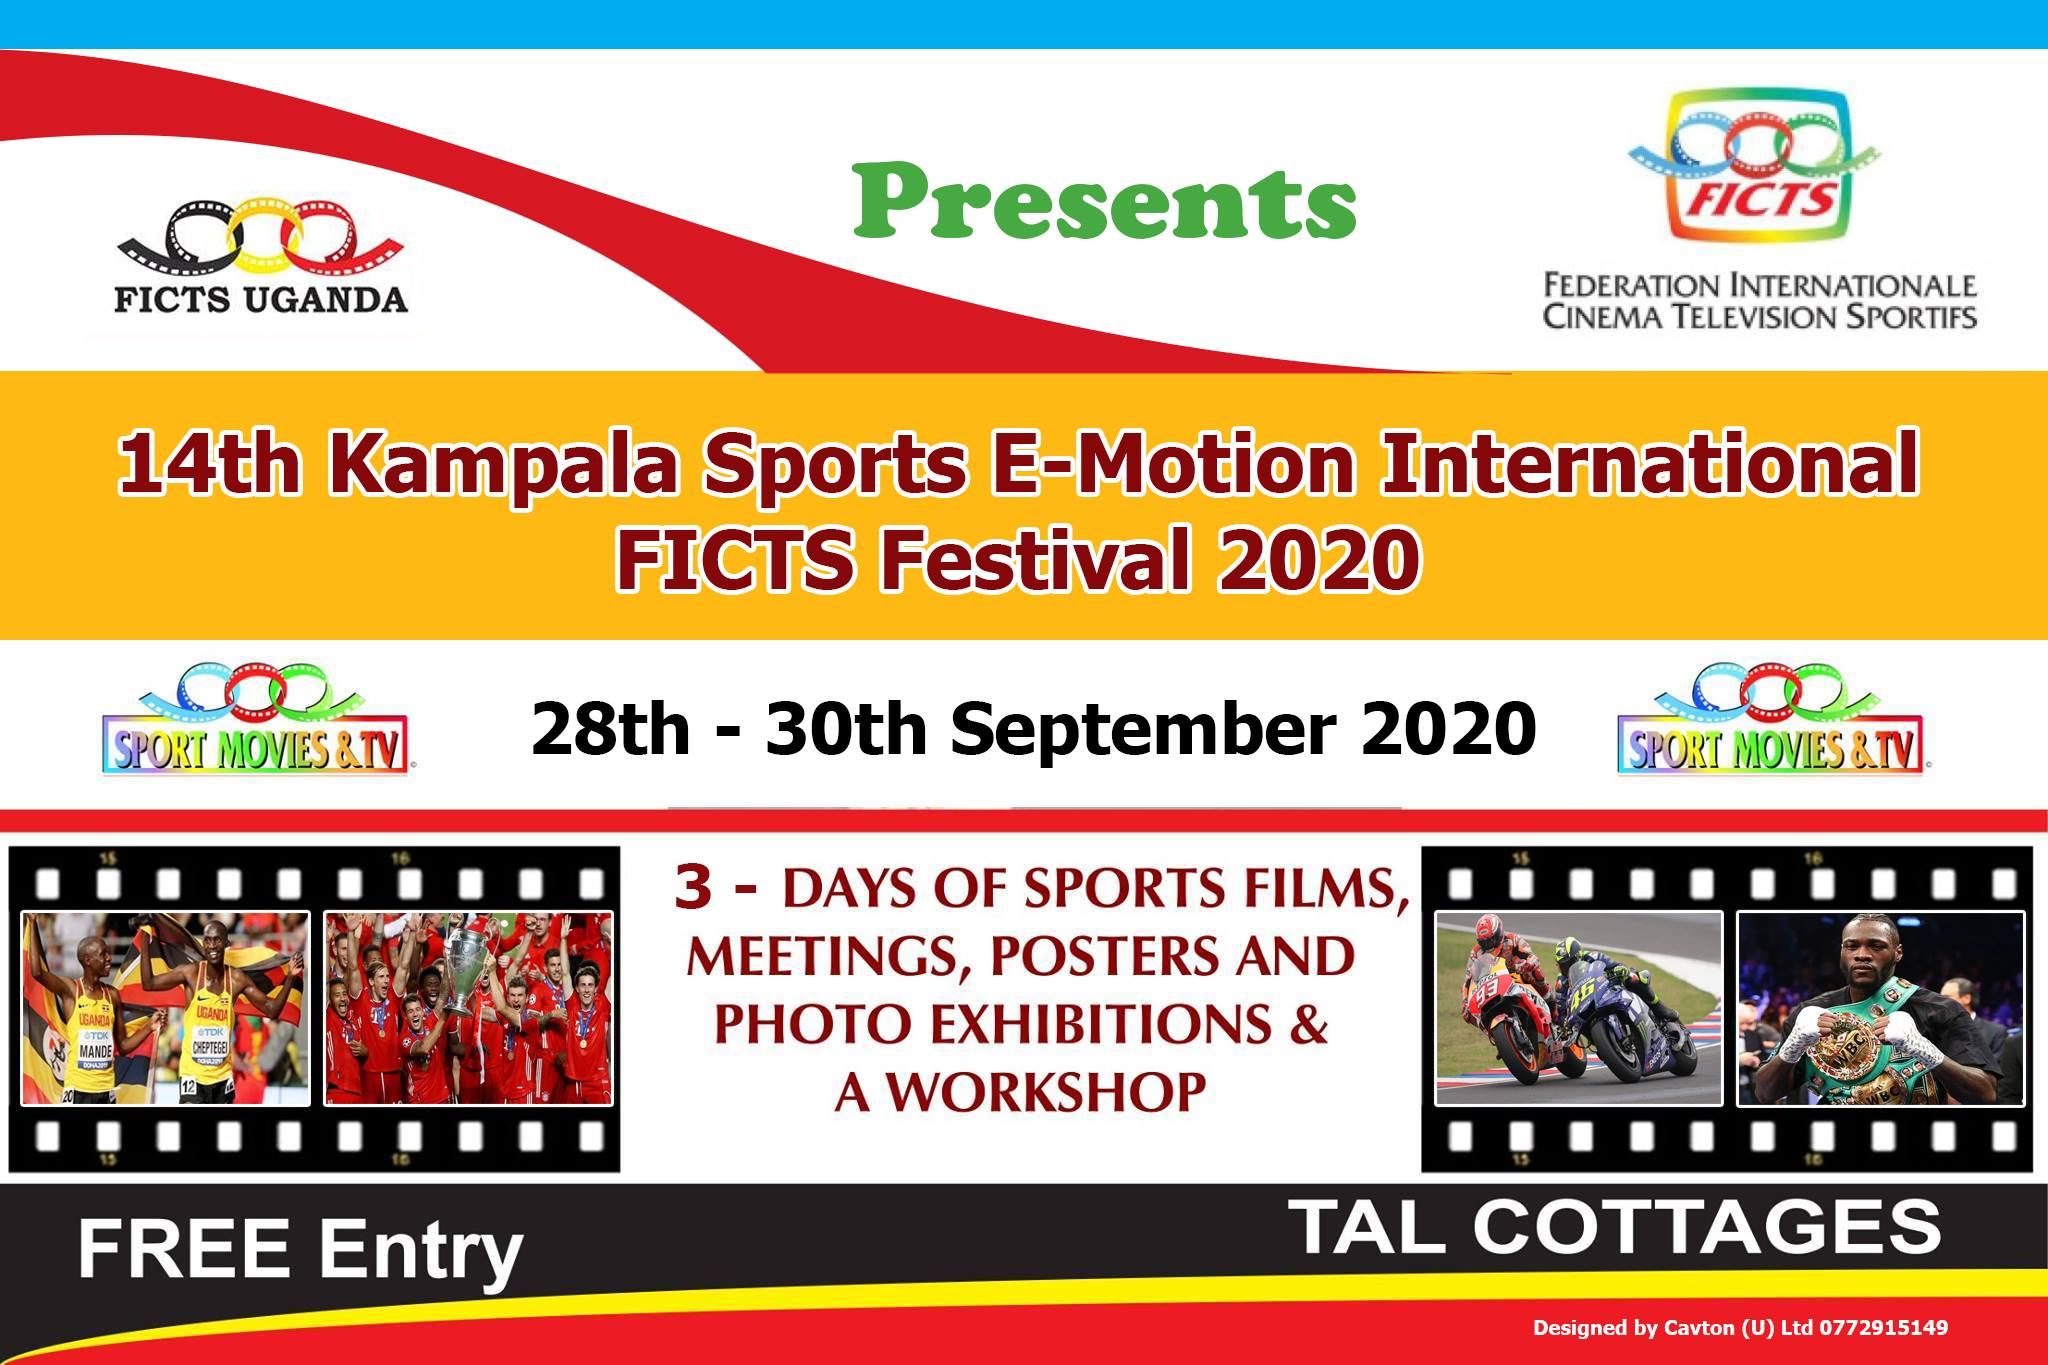 KAMPALA INTERNATIONAL FICTS FESTIVAL